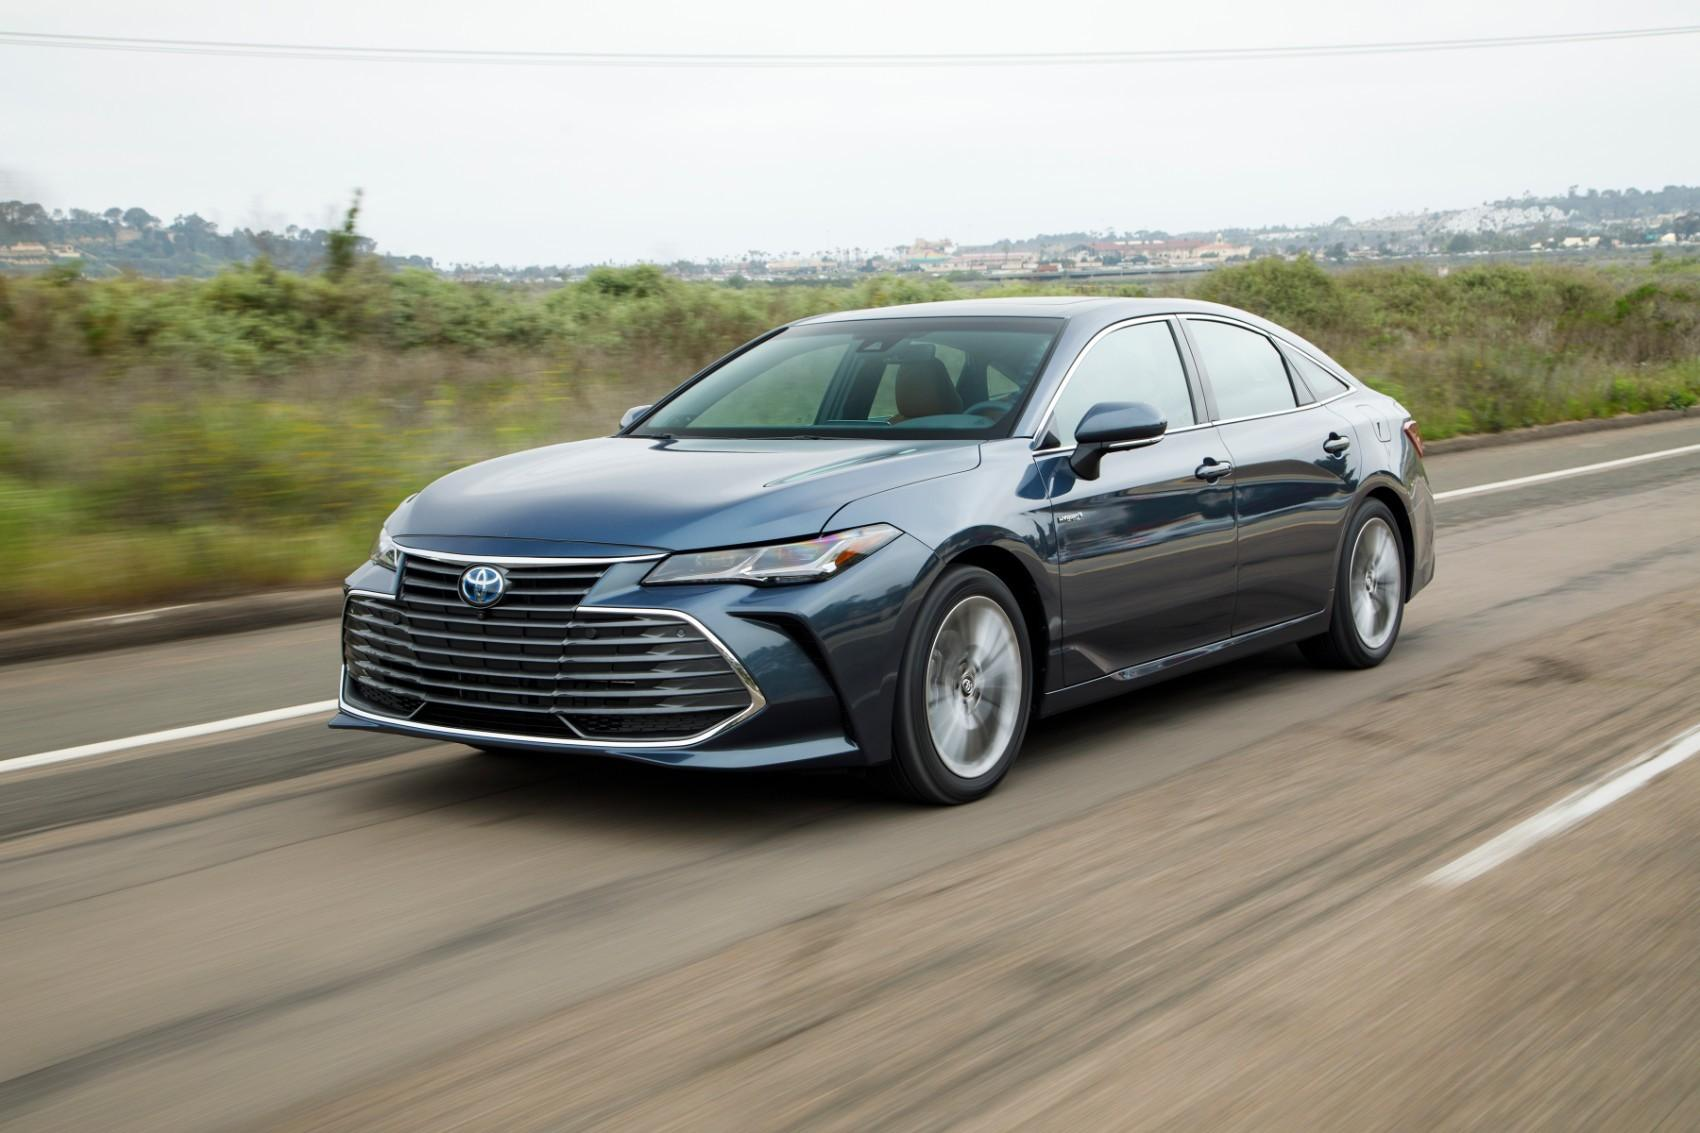 2019 Toyota Avalon Hybrid Limited Review Ideal For Work Or Pleasure